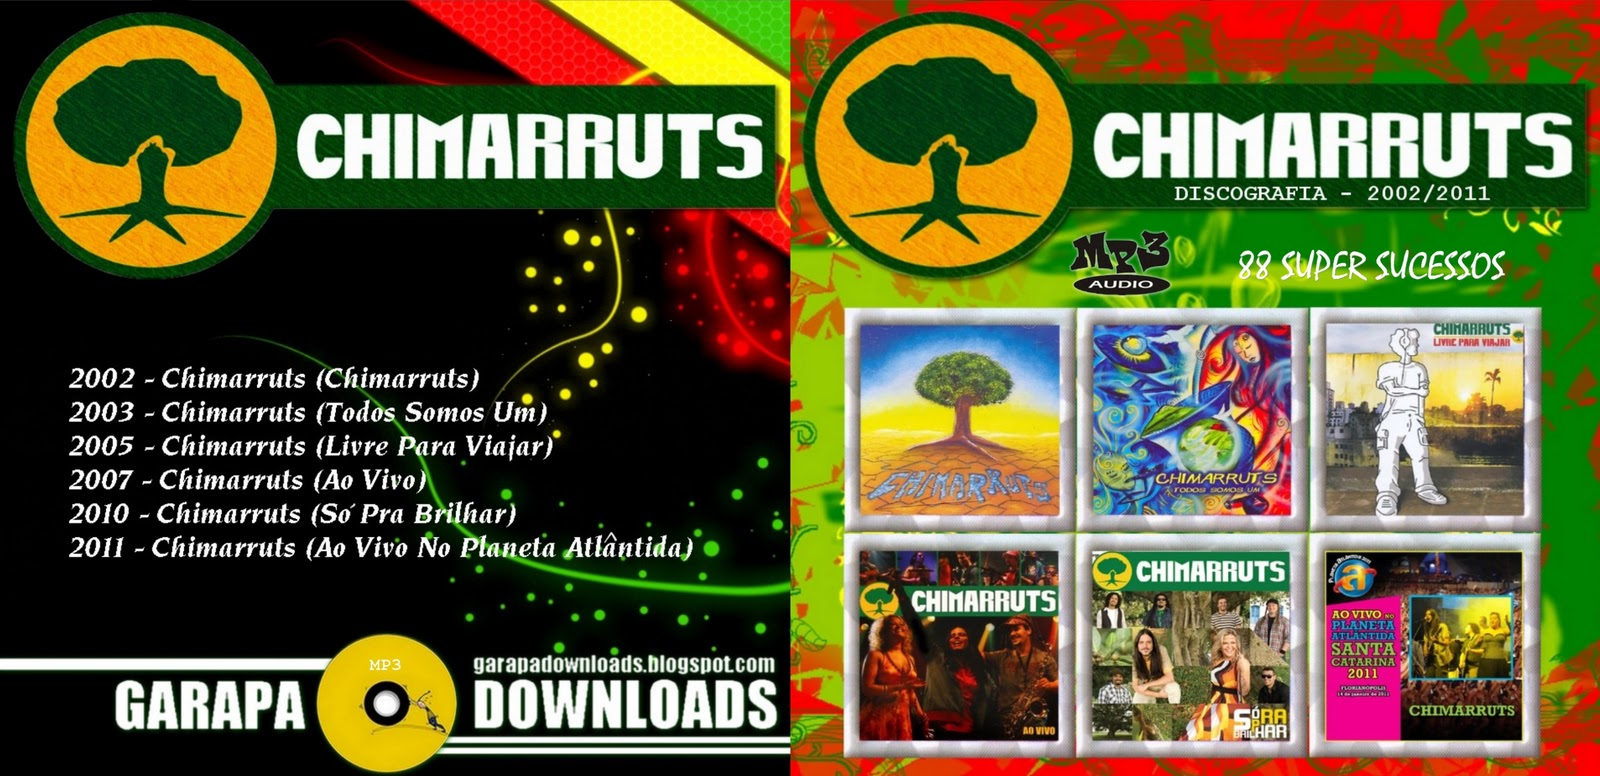 cd chimarruts ao vivo 2011